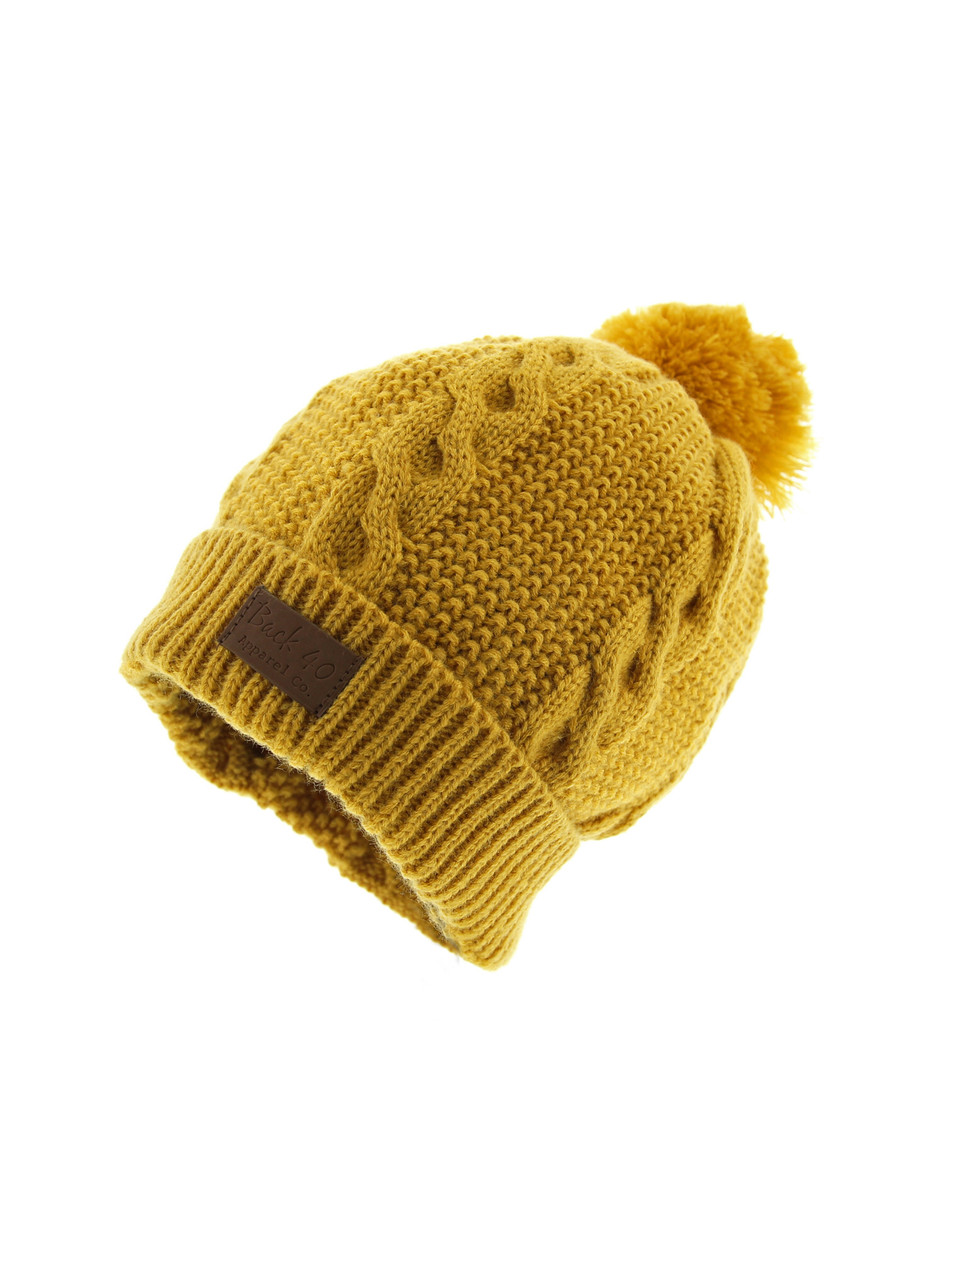 1830ddb8472 Cable Pom Pom Cuffed Beanie Unisex - Yellow Thick and Warm Knit Winter Hat  Skull Cap by Back 40